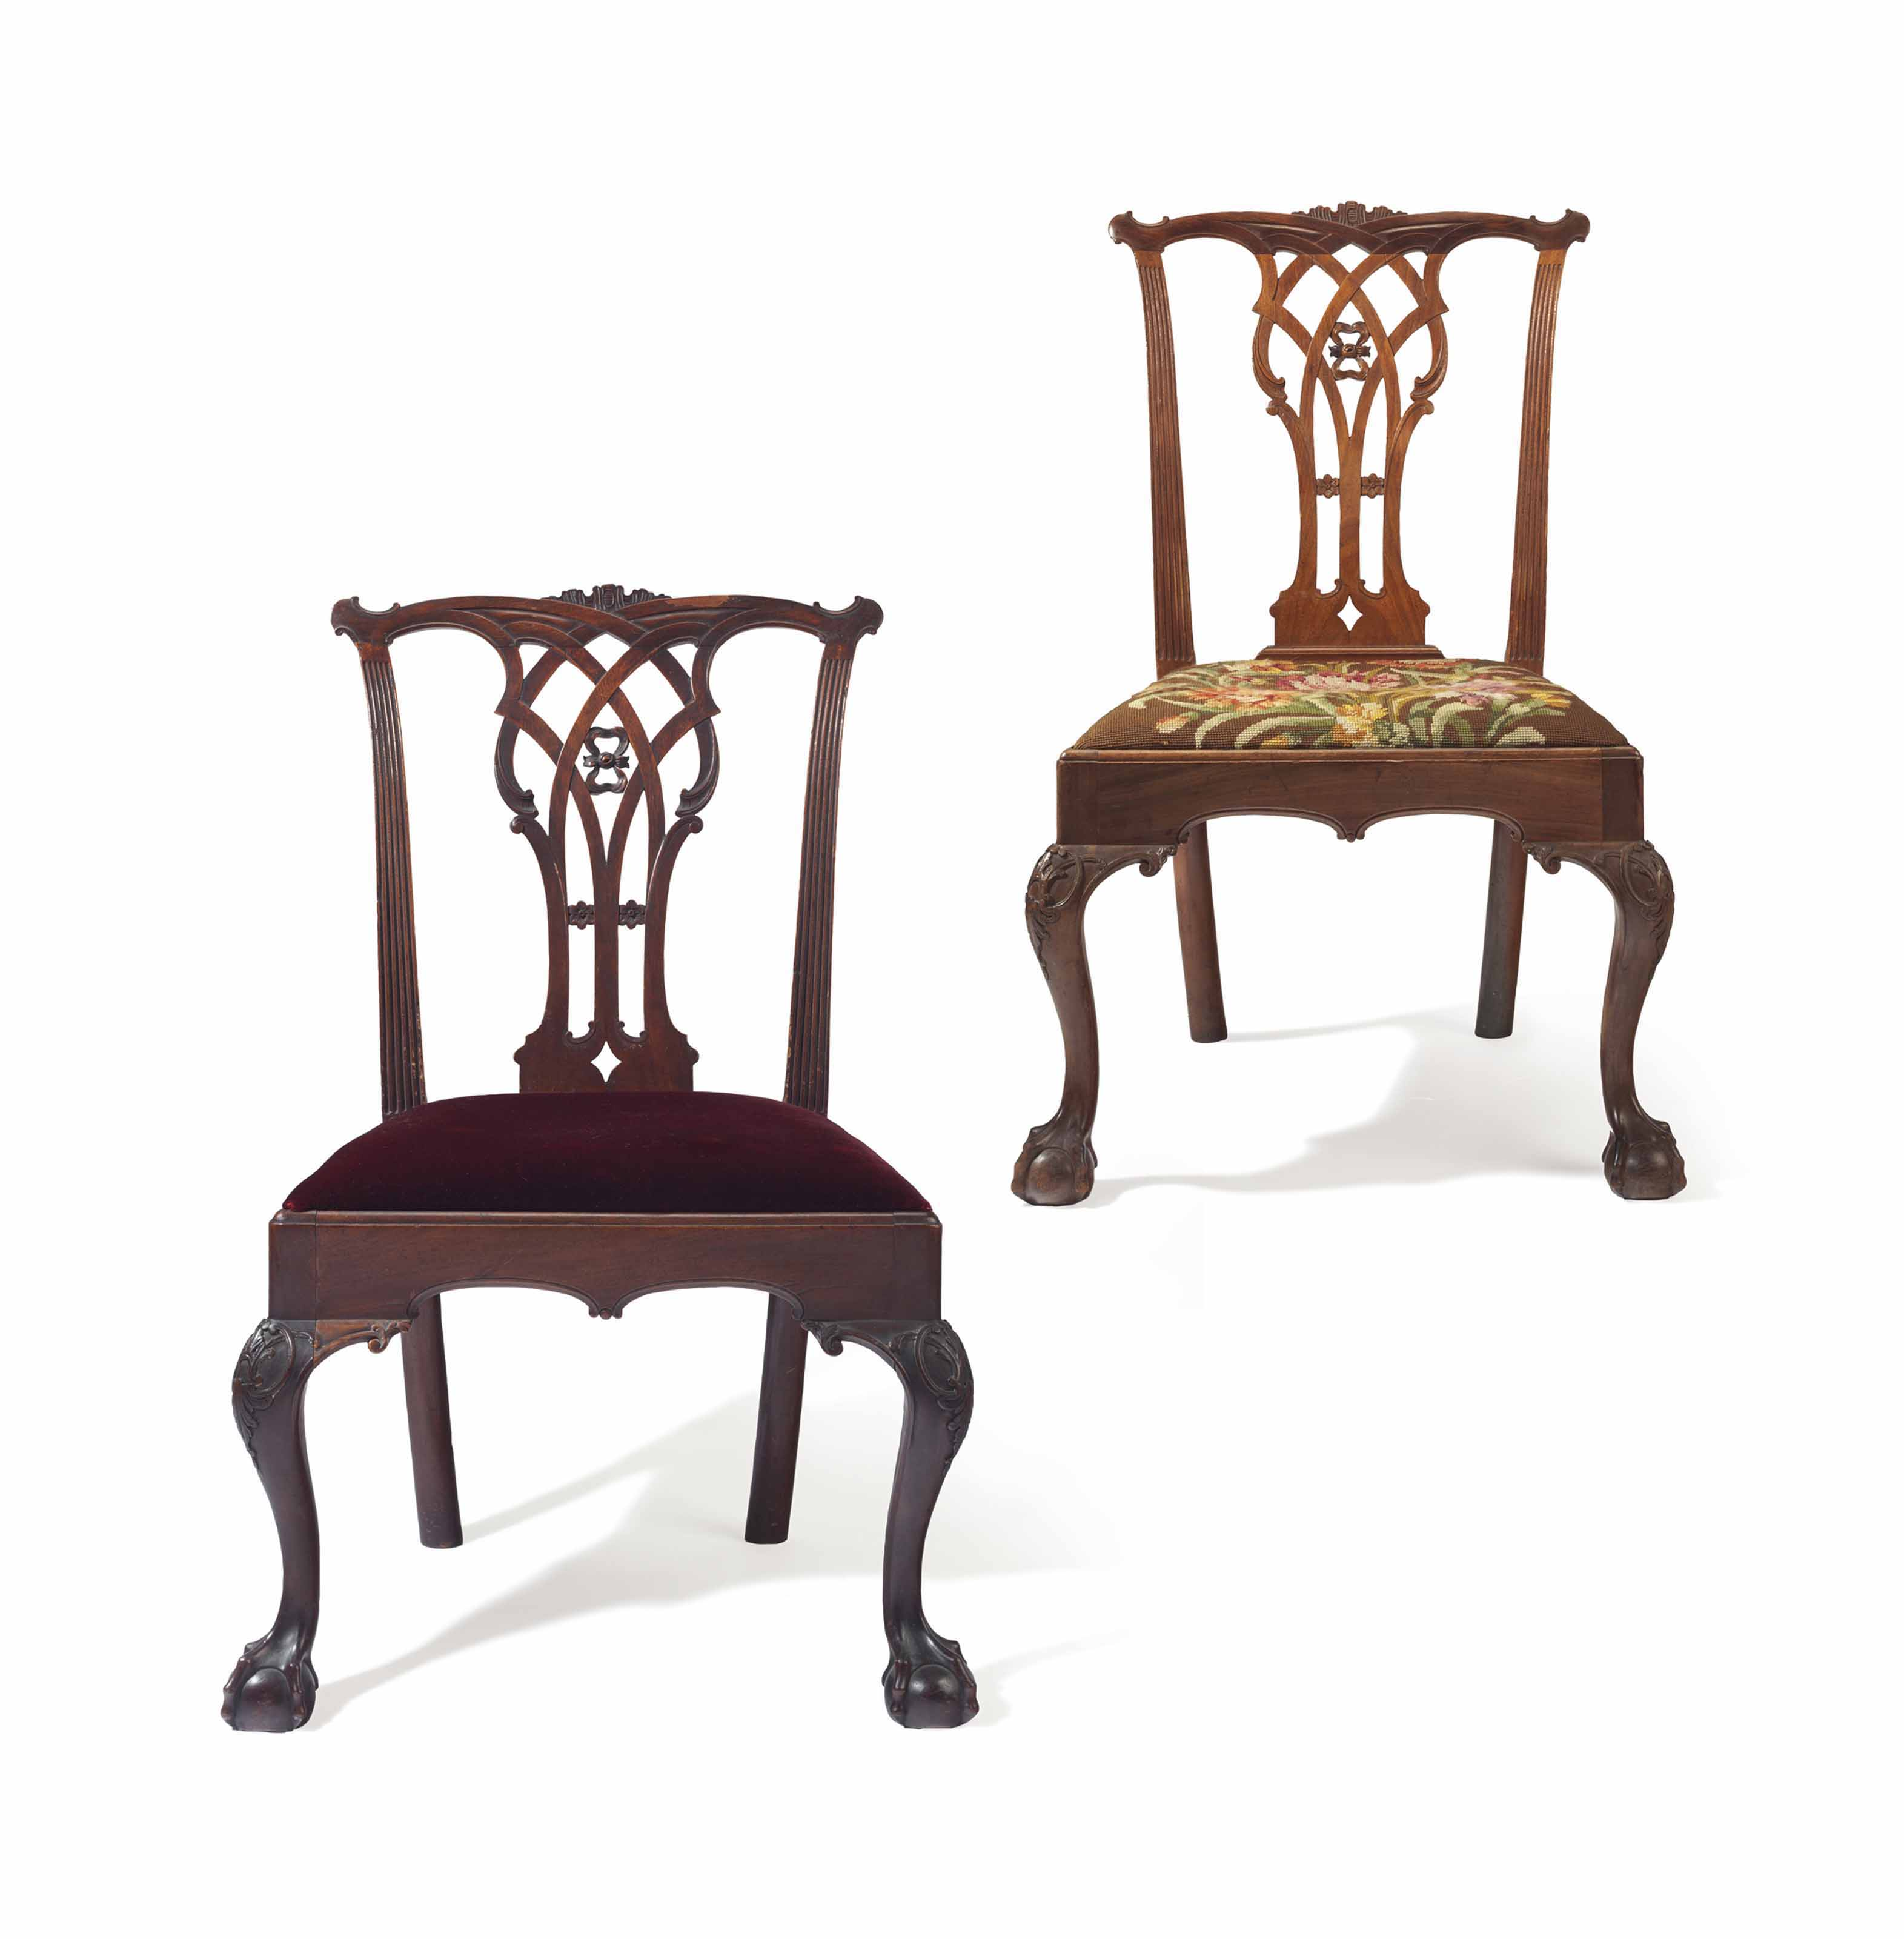 THE RICHARD EDWARDS PAIR OF CHIPPENDALE CARVED MAHOGANY SIDE CHAIRS